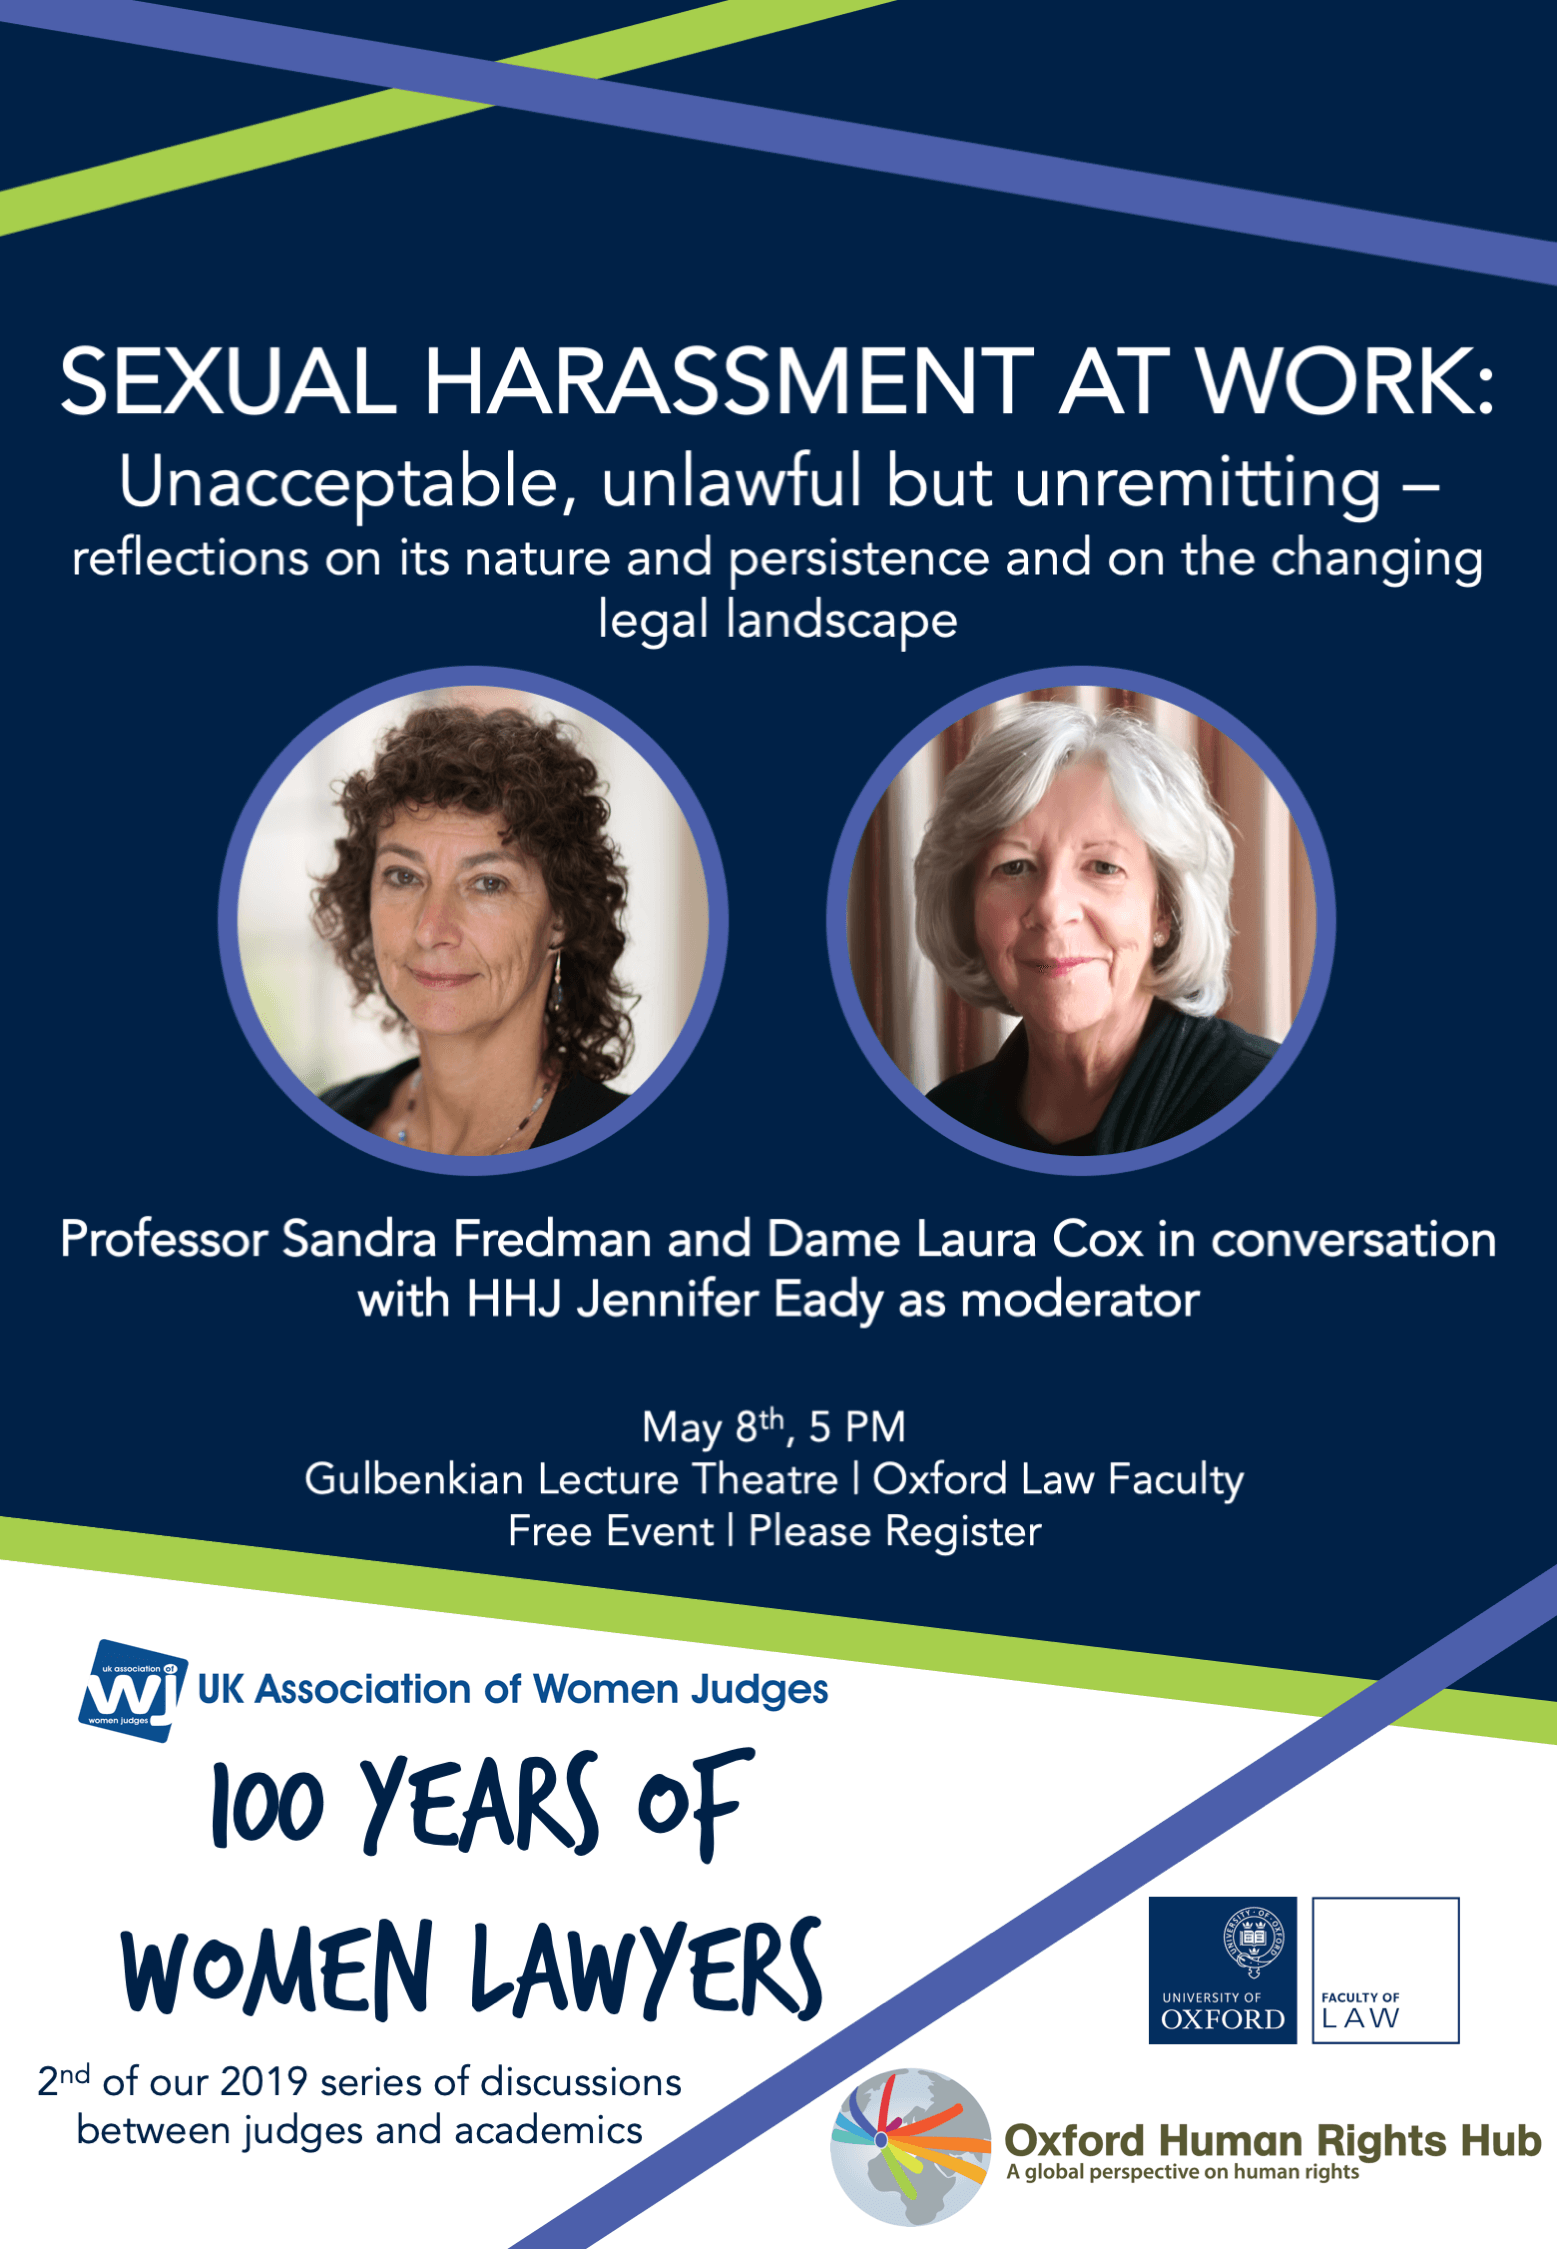 Sexual Harassment at Work: Unacceptable, Unlawful but Unremitting: Reflections on its Nature, Persistence and on the Changing Legal Landscape-Prof Sandy Fredman and Dame Laura Cox